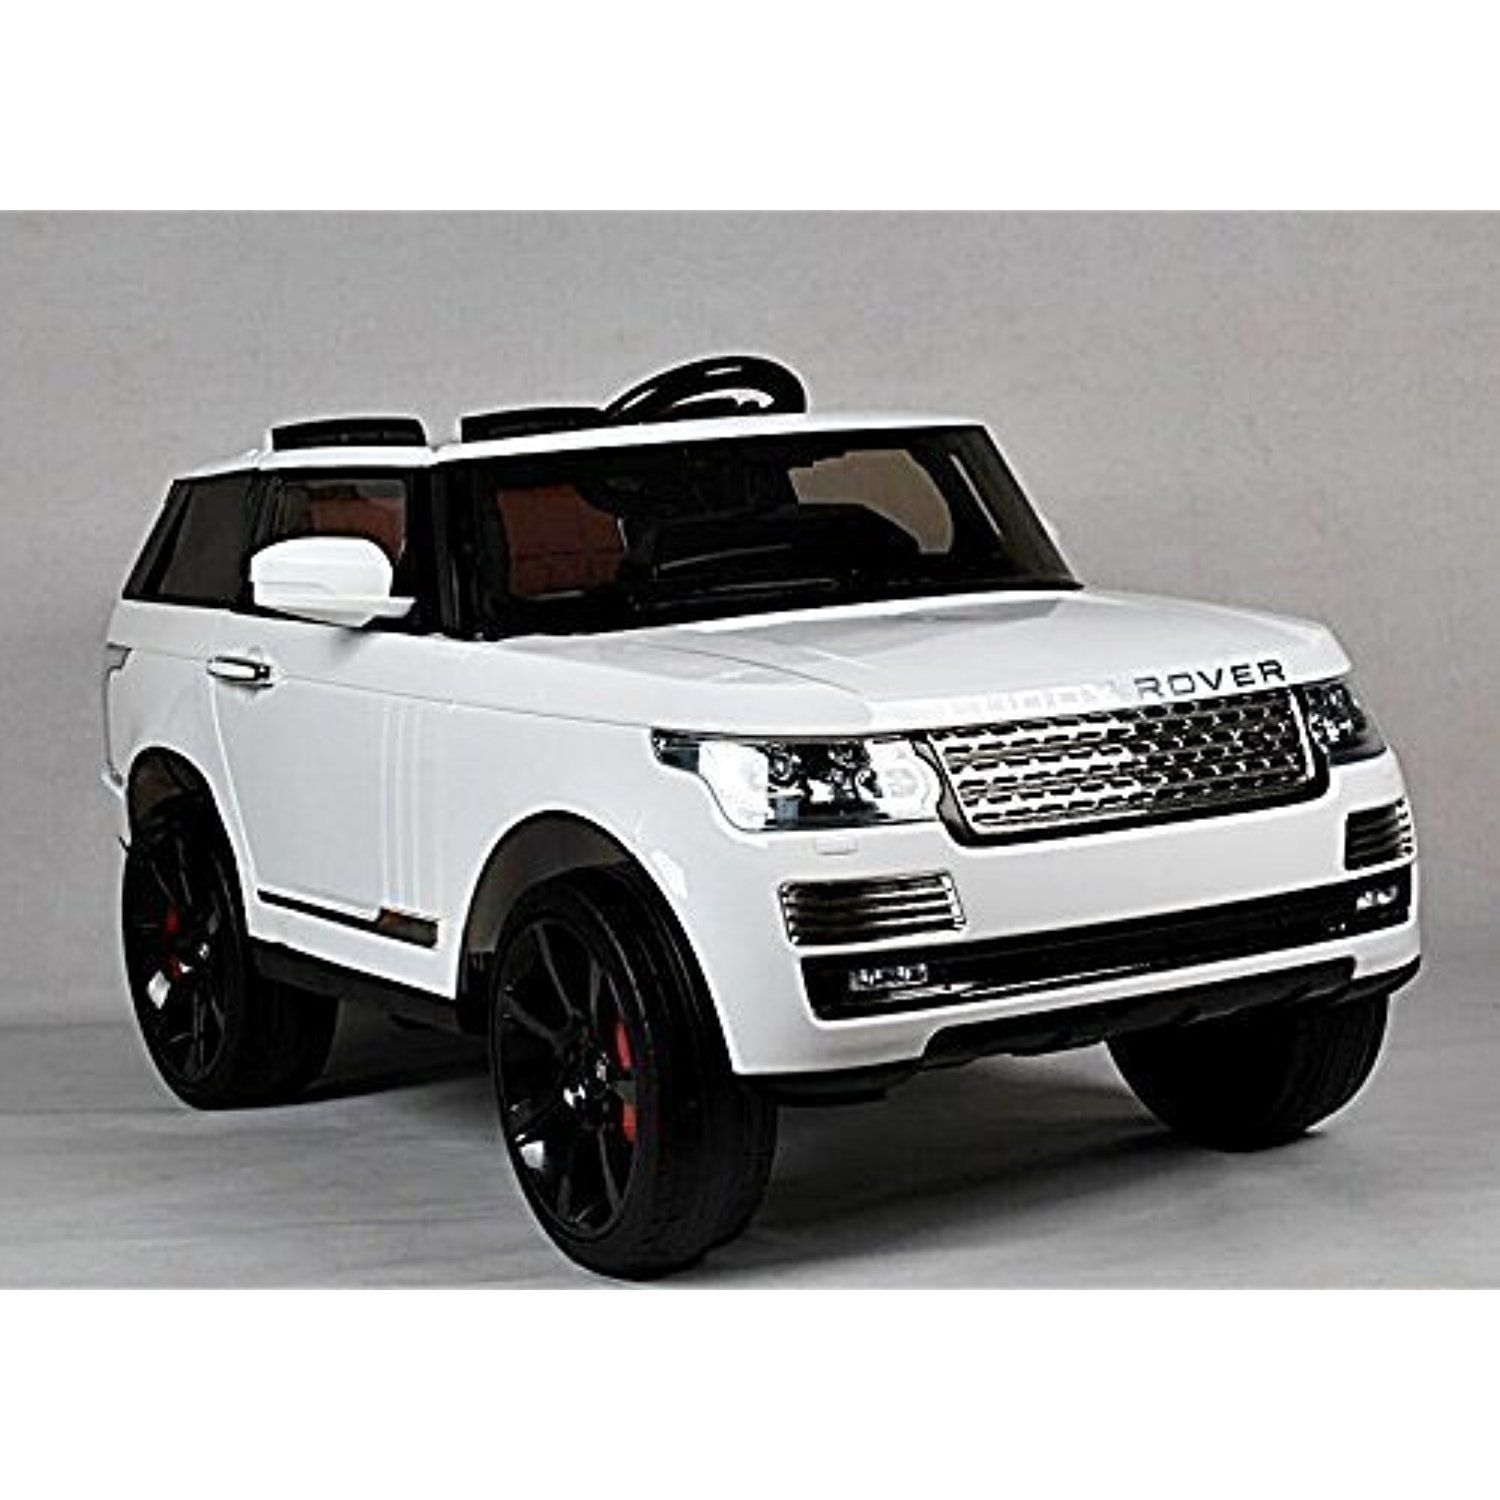 Electric Ride On Car Toy For Kids RANGE ROVER STYLE ROV